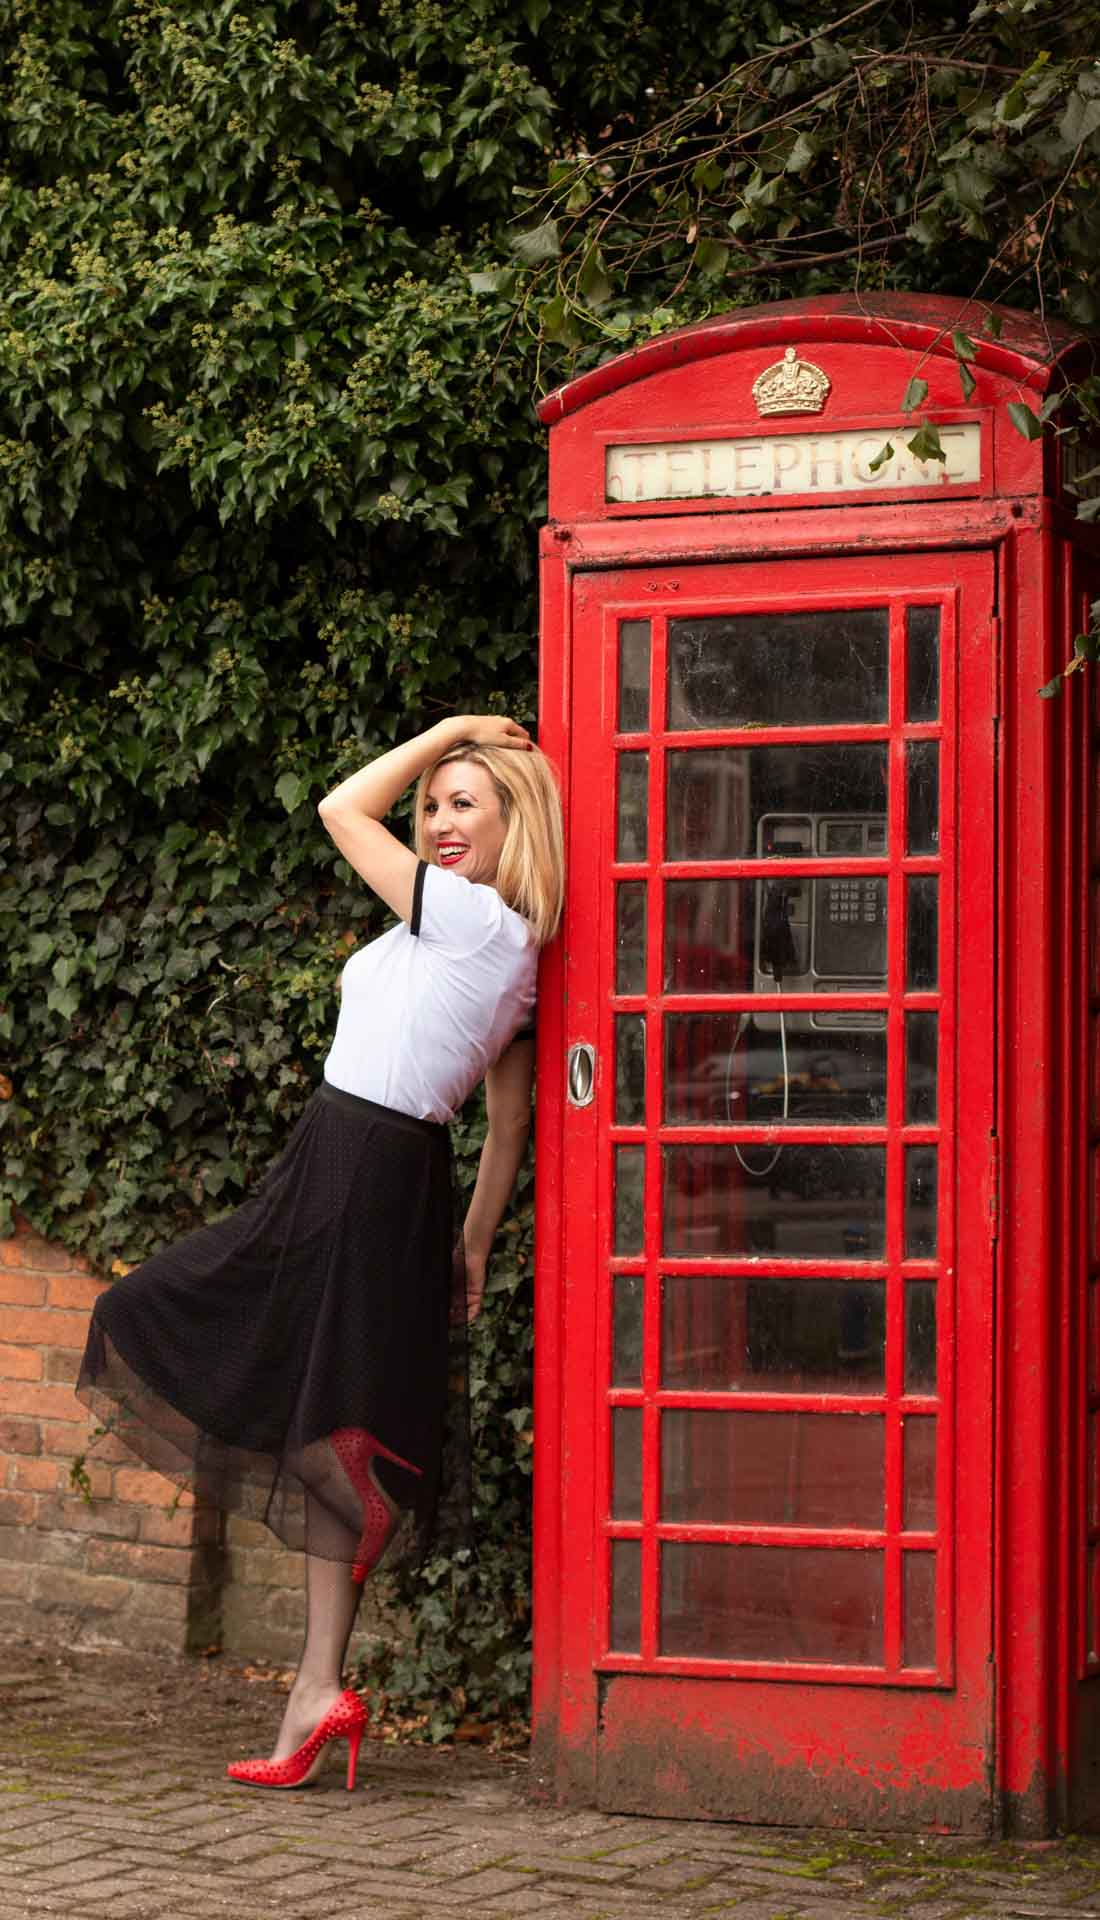 Blond woman posing next to red telephone booth. Personal branding photography Birmingham UK, Birmingham fashion designer Rossi Videnova, branding photographer West Midlands